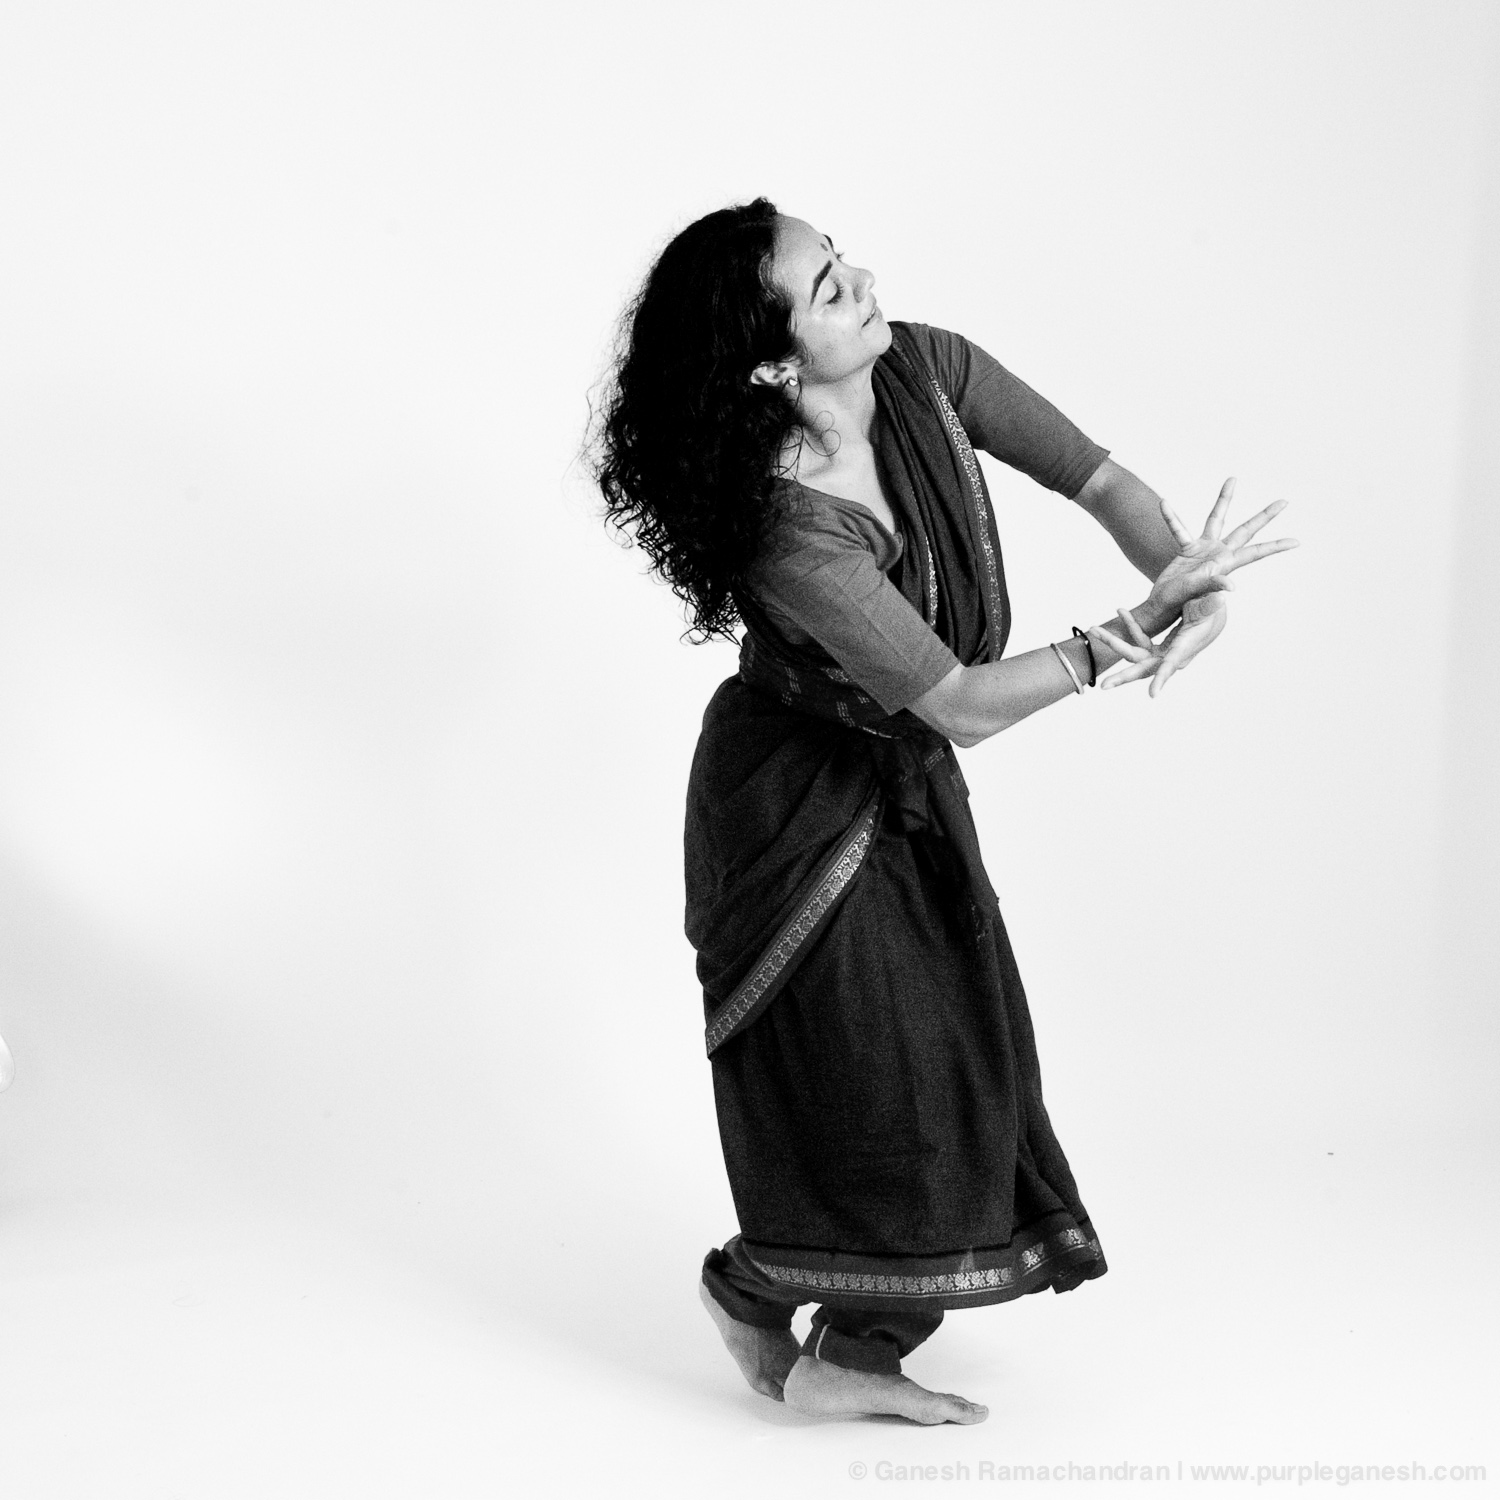 Dancing to Kumar Gandharva's Melodies | Warm-up   session at Purplega  nesh Studio, Boston MA | Photo: Ganesh Ramachandran